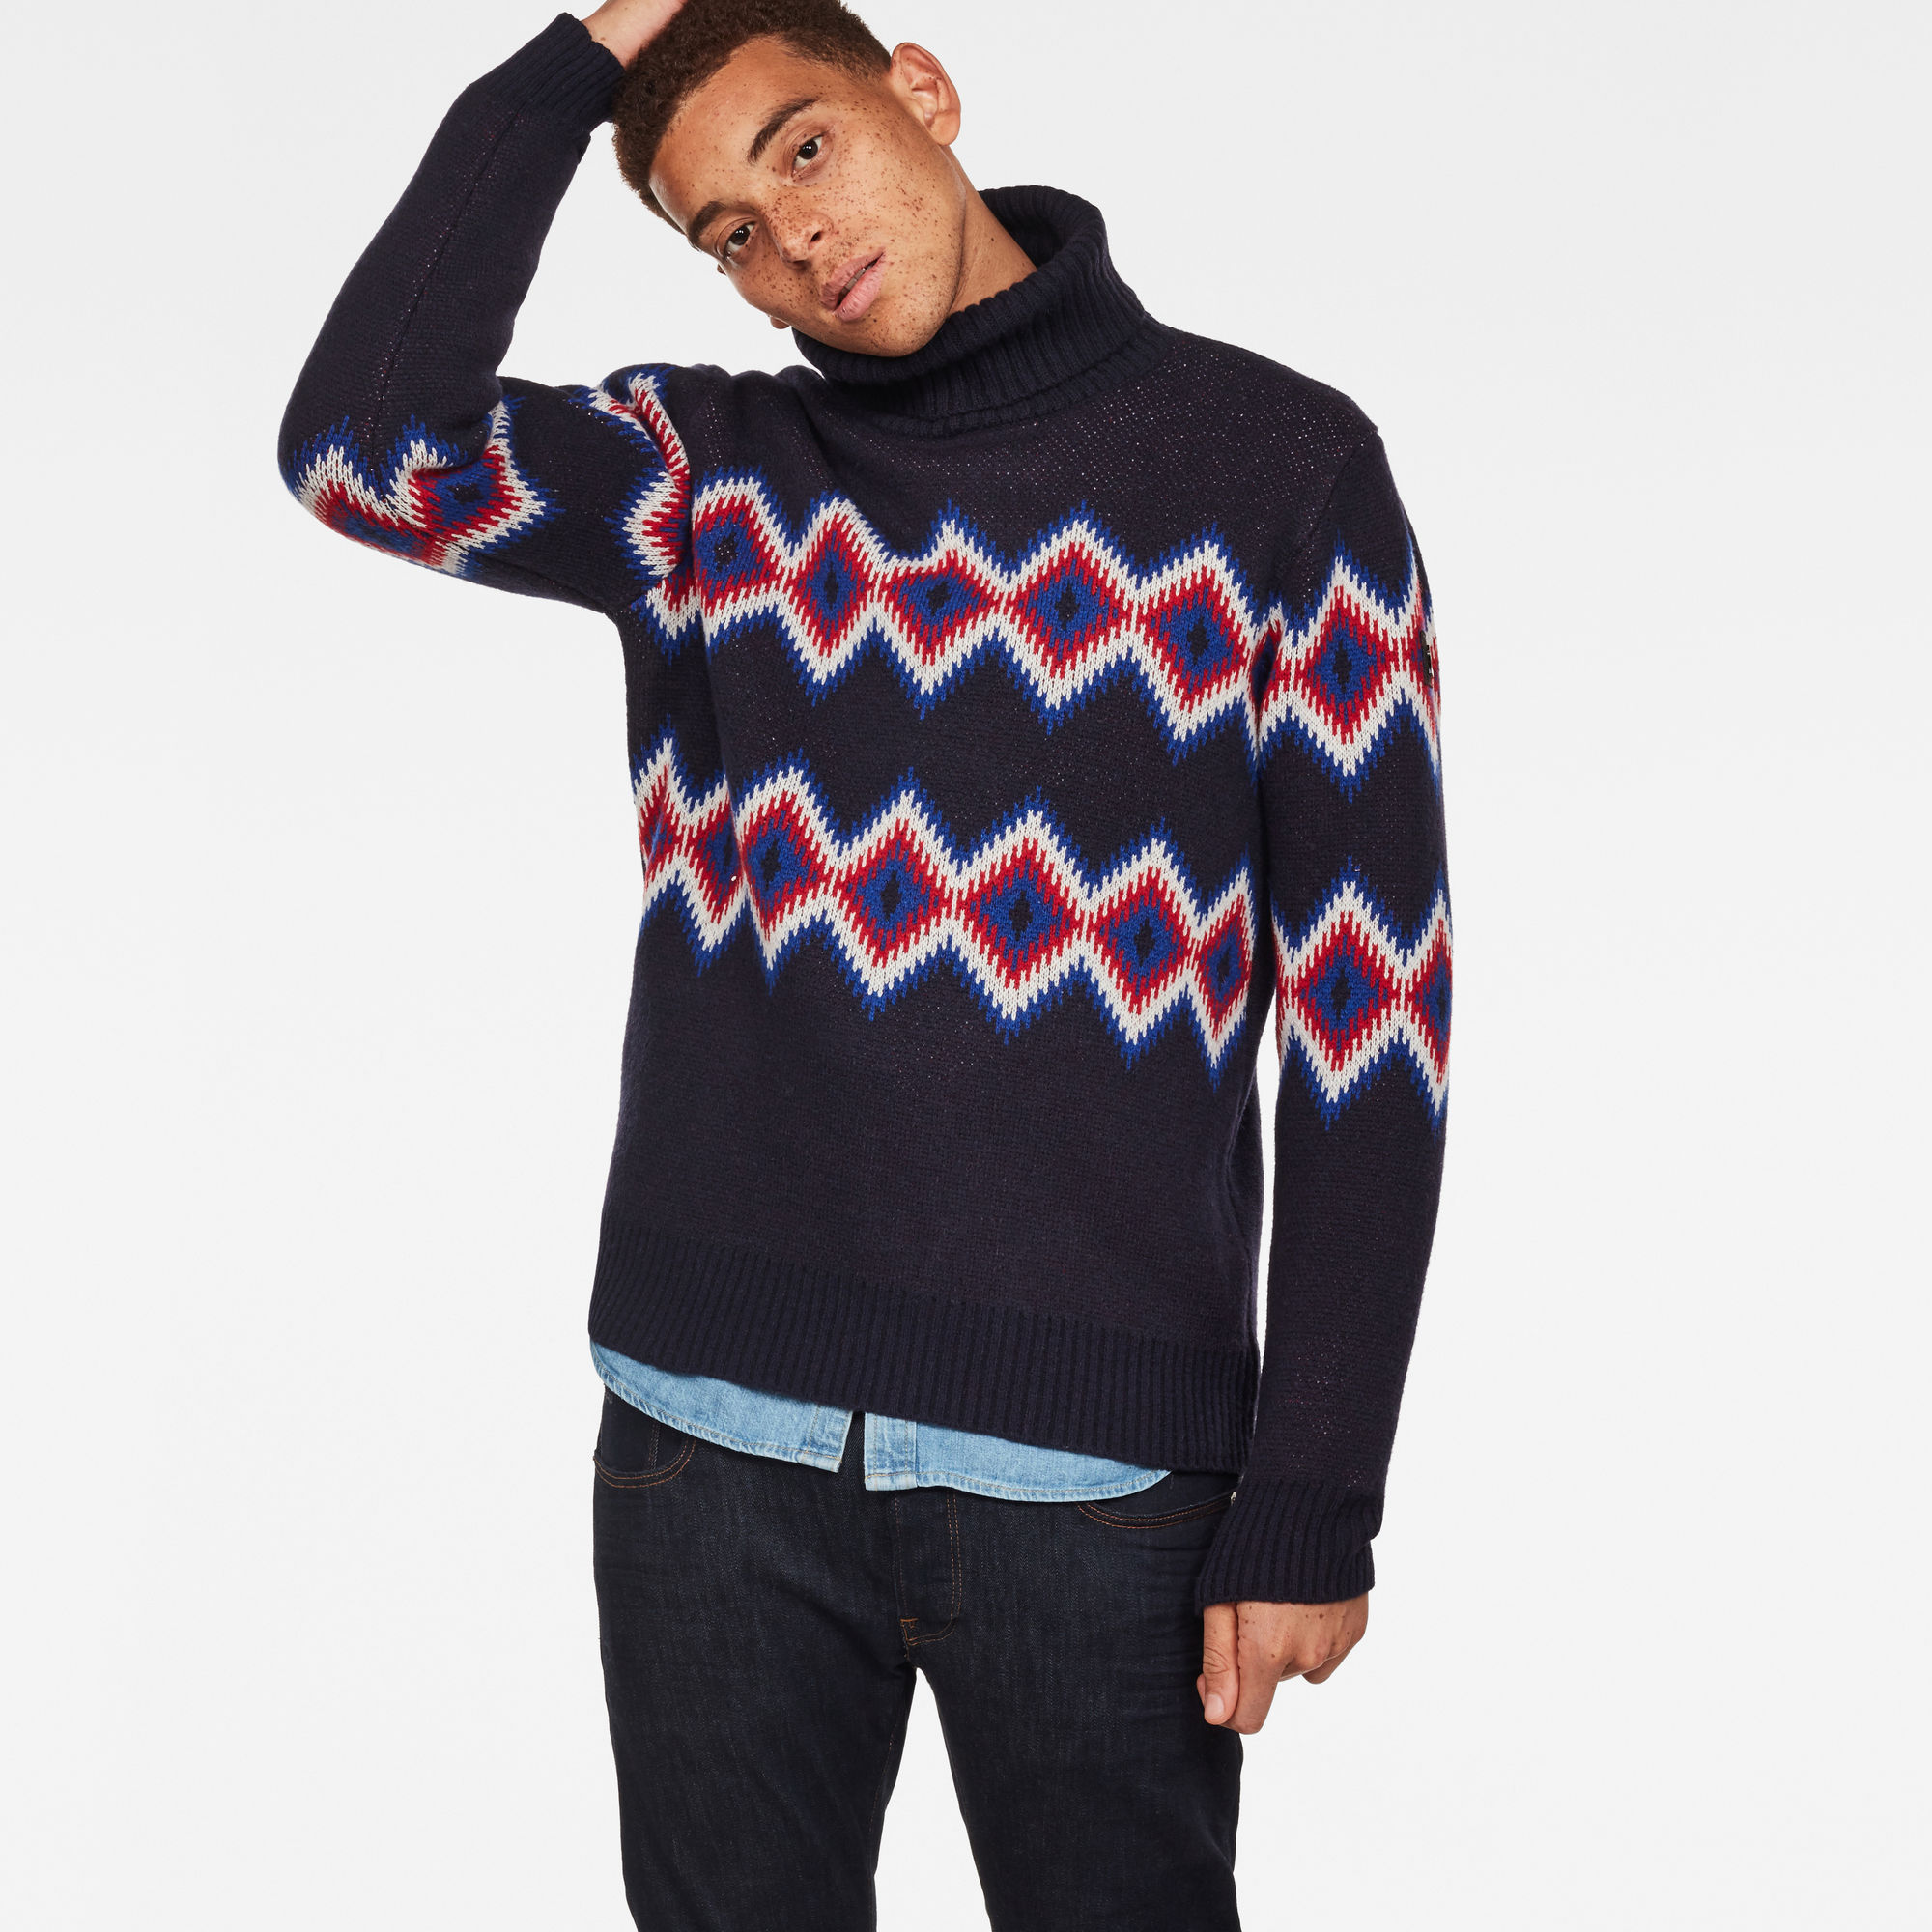 Image of G Star Raw Jayvi Diamond Jacquard Turtle Knit